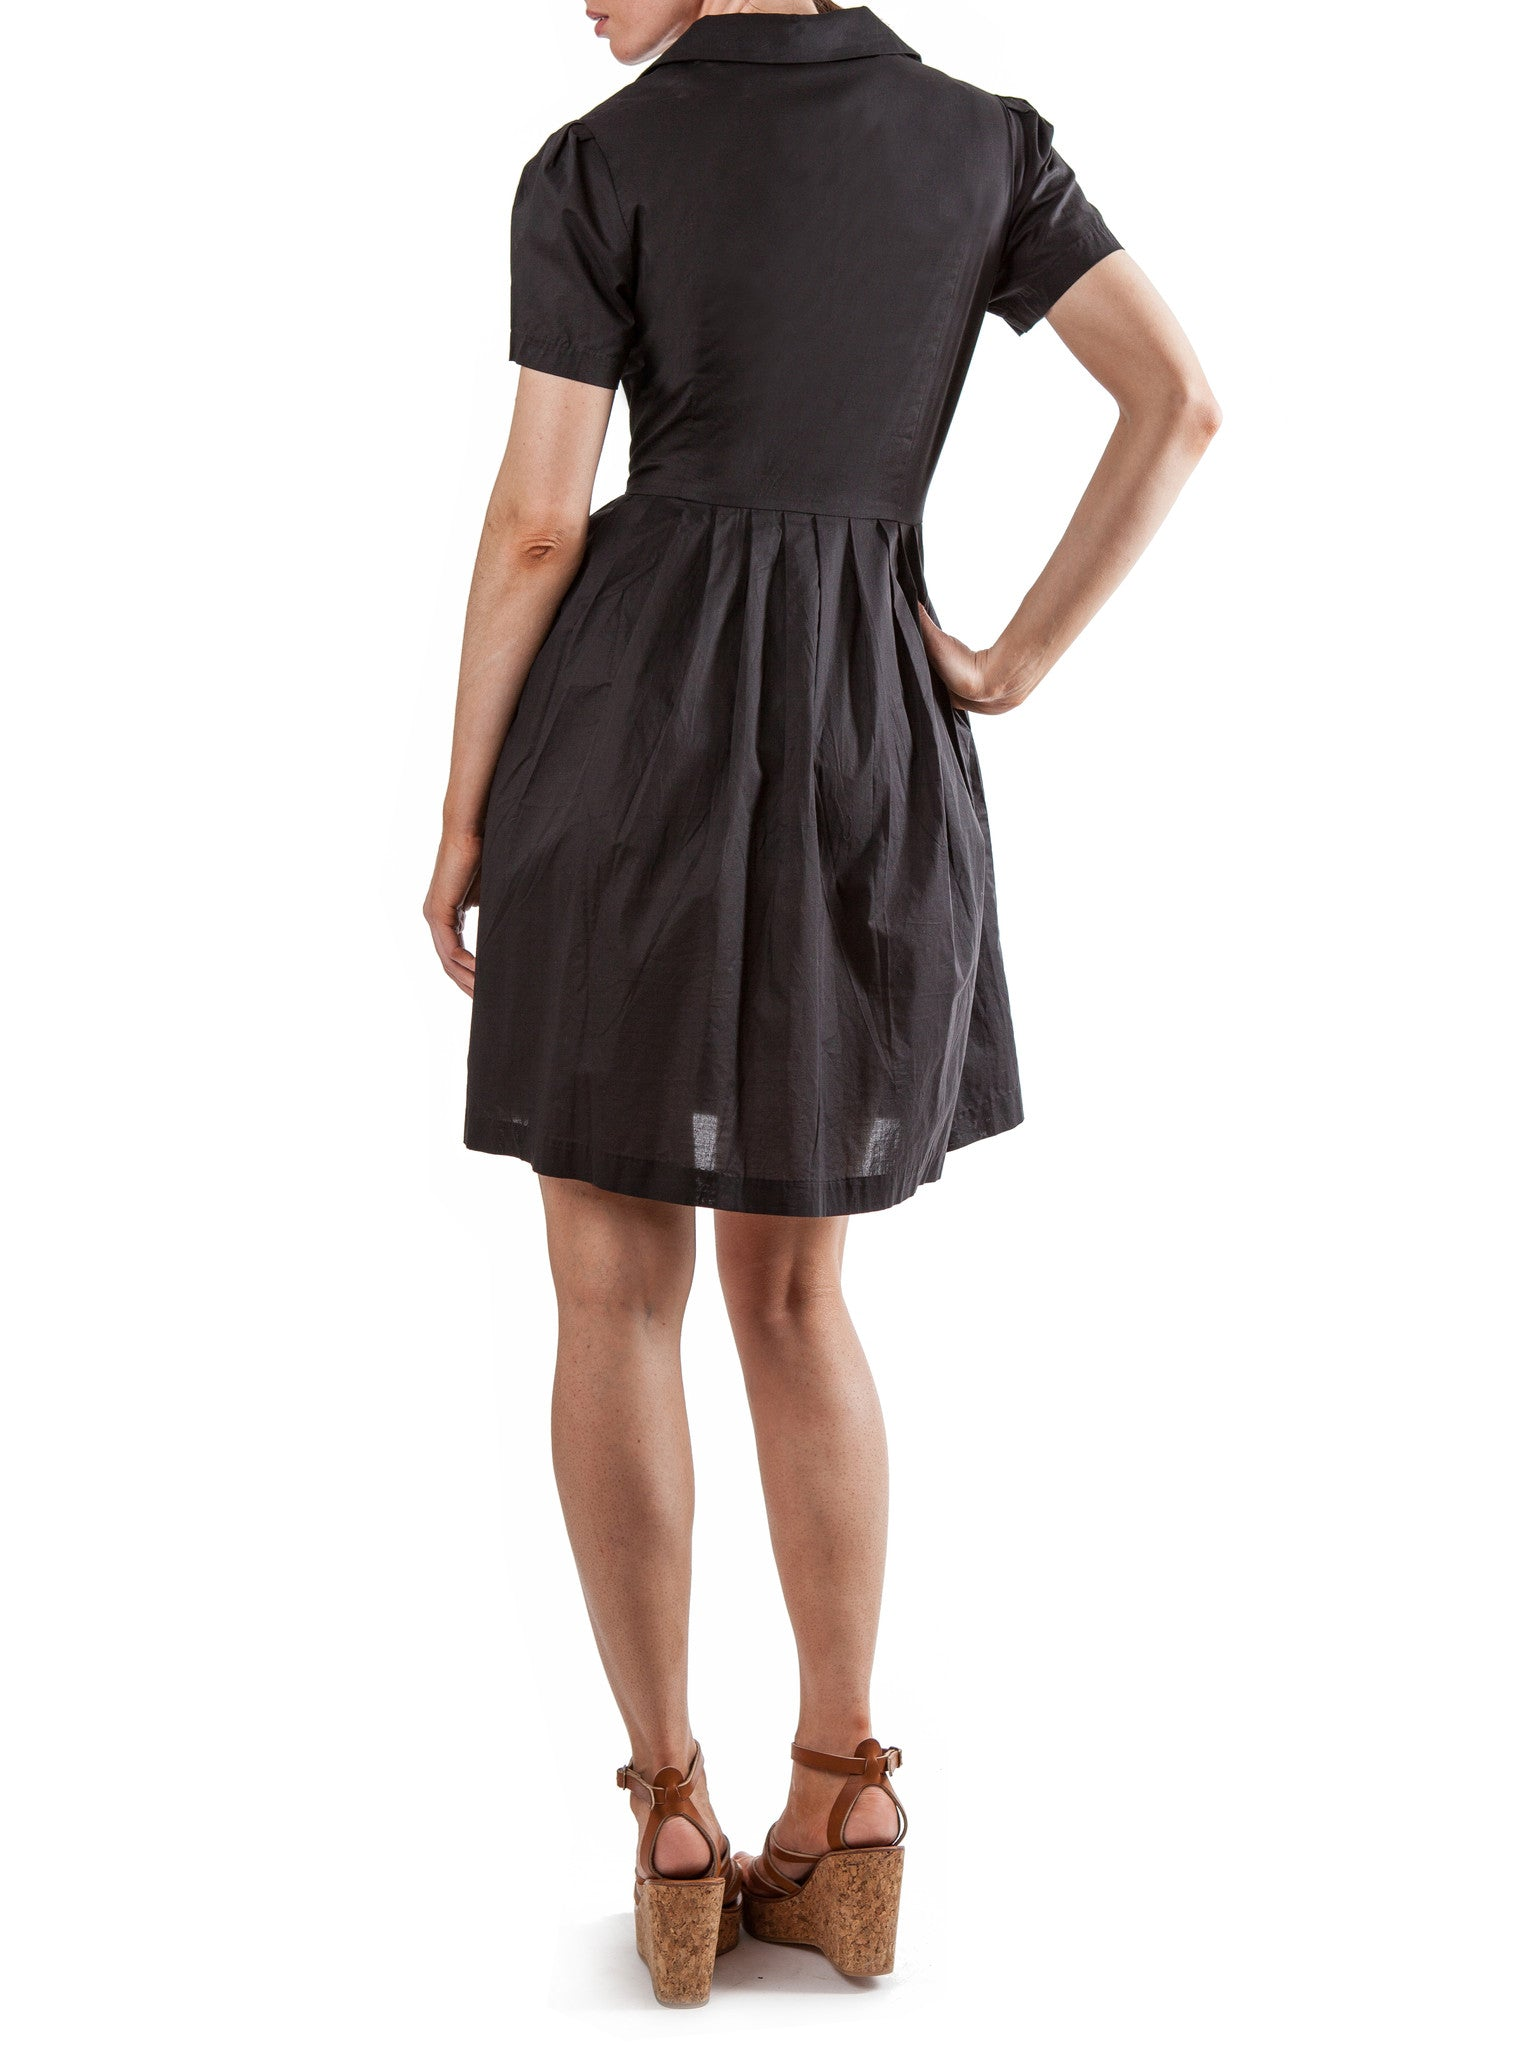 Black dress | Cotton